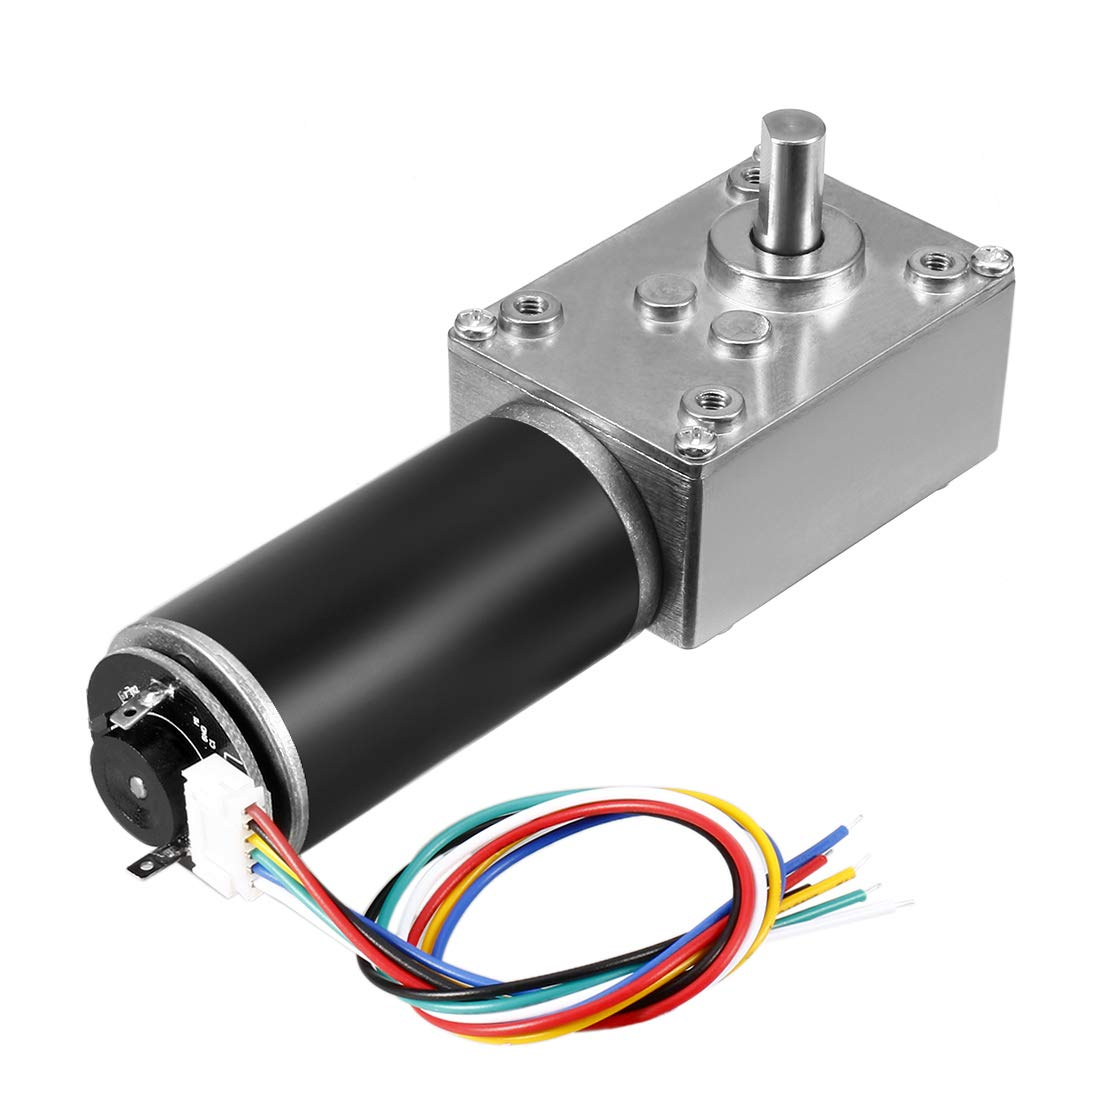 uxcell DC 12V 74RPM 6.4Kg.cm Self-Locking Worm Gear Motor with Encoder and Cable High Torque Speed Reduction Motor